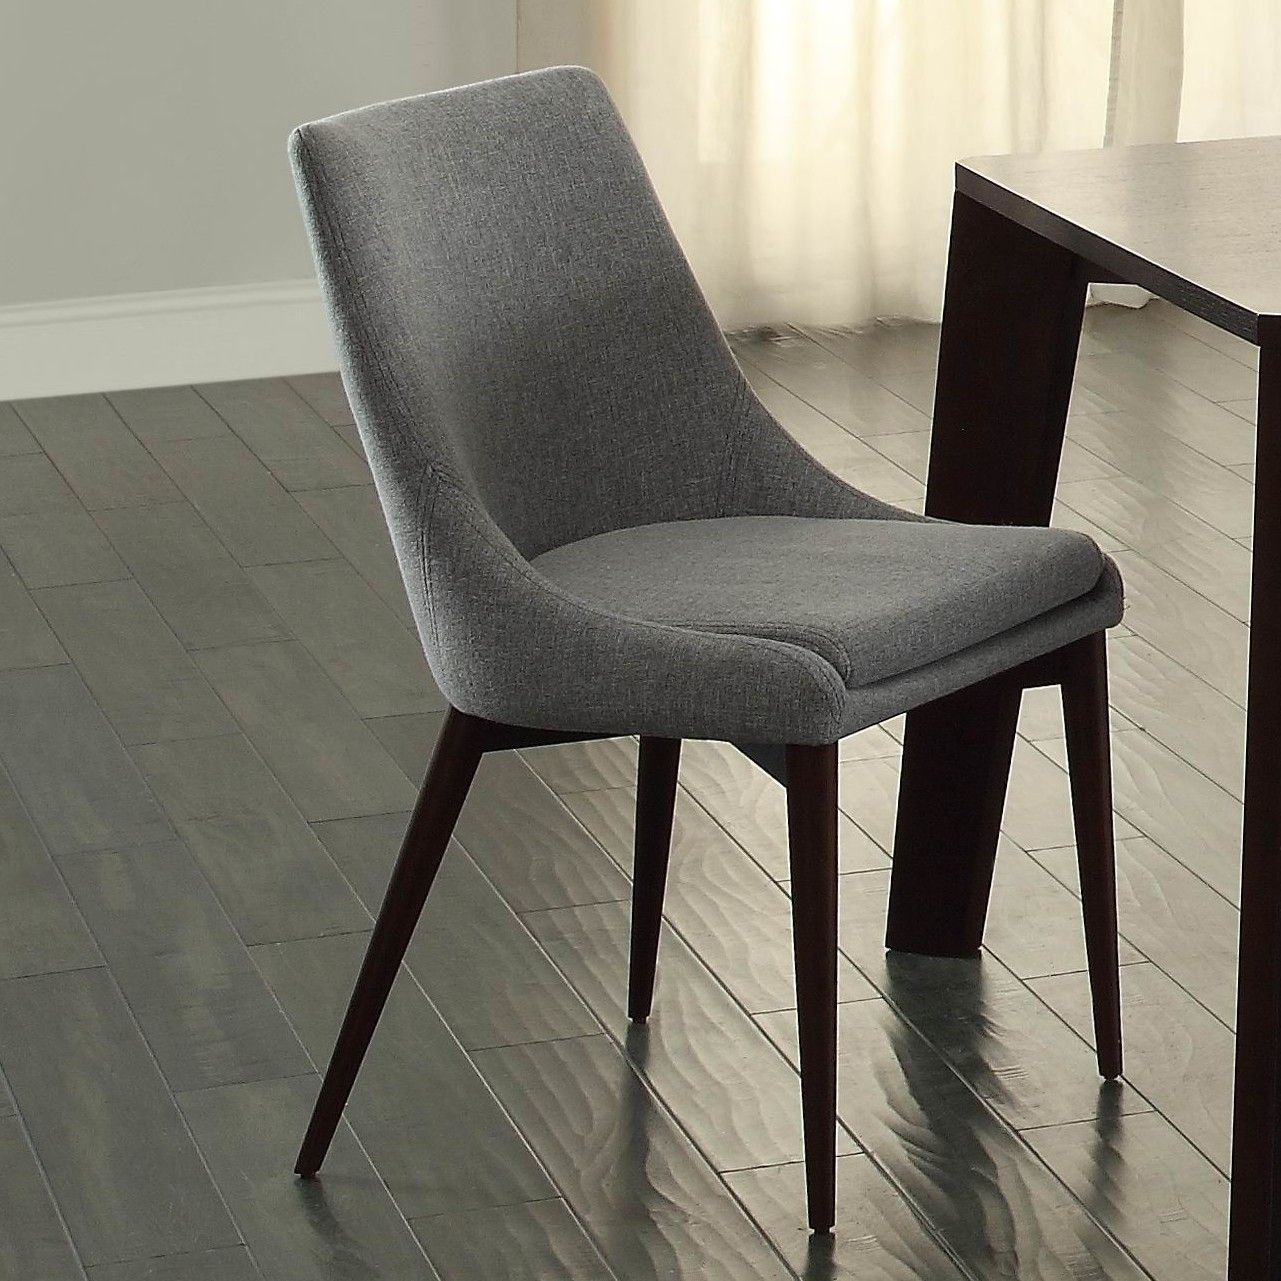 woodbridge home designs fillmore side chair allmodern - Woodbridge Home Designs Furniture